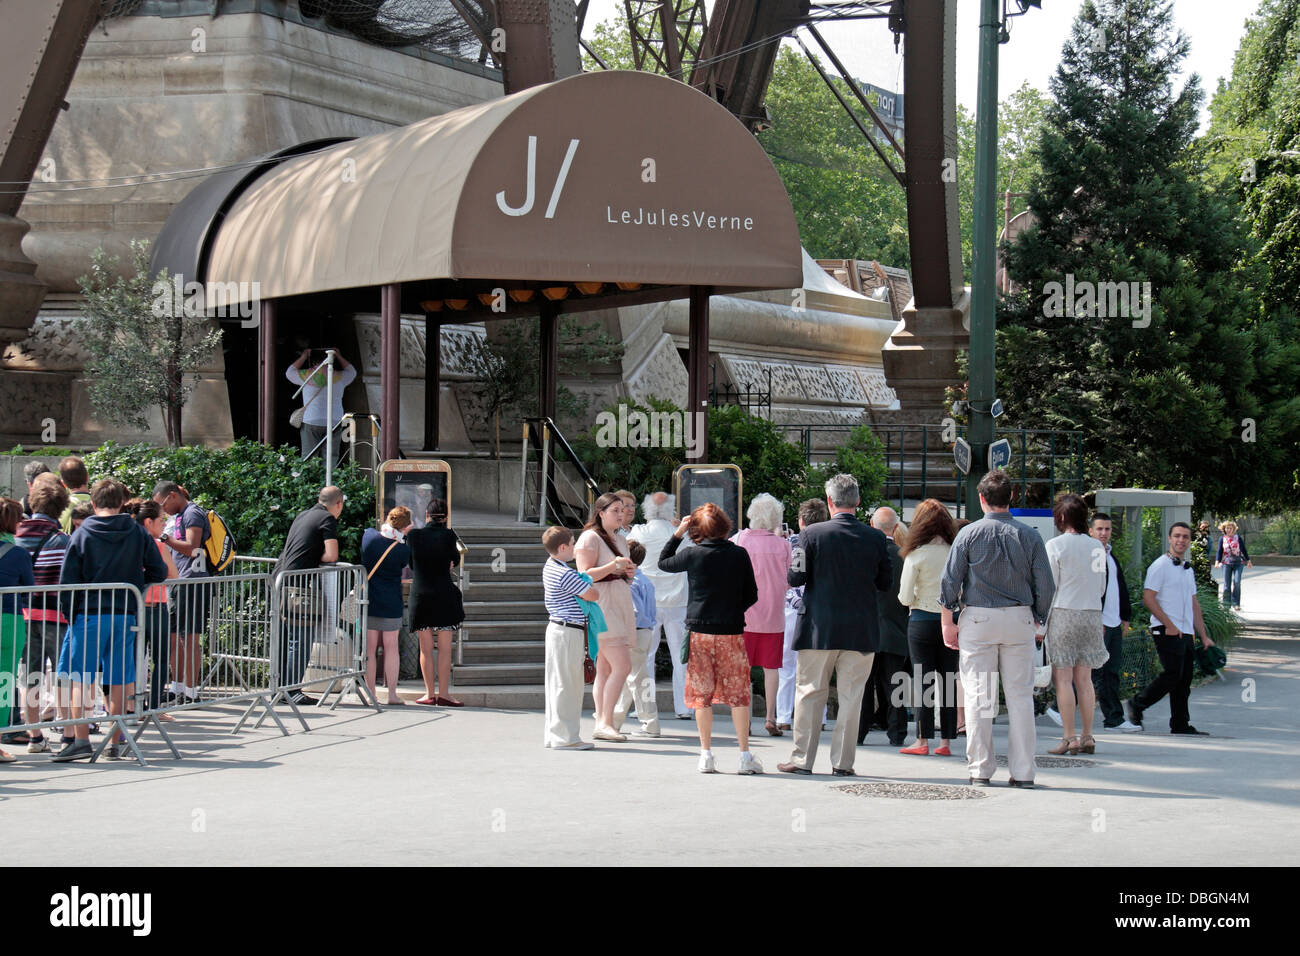 Queues Of People Waiting To Enter The Jules Verne Restaurant In The